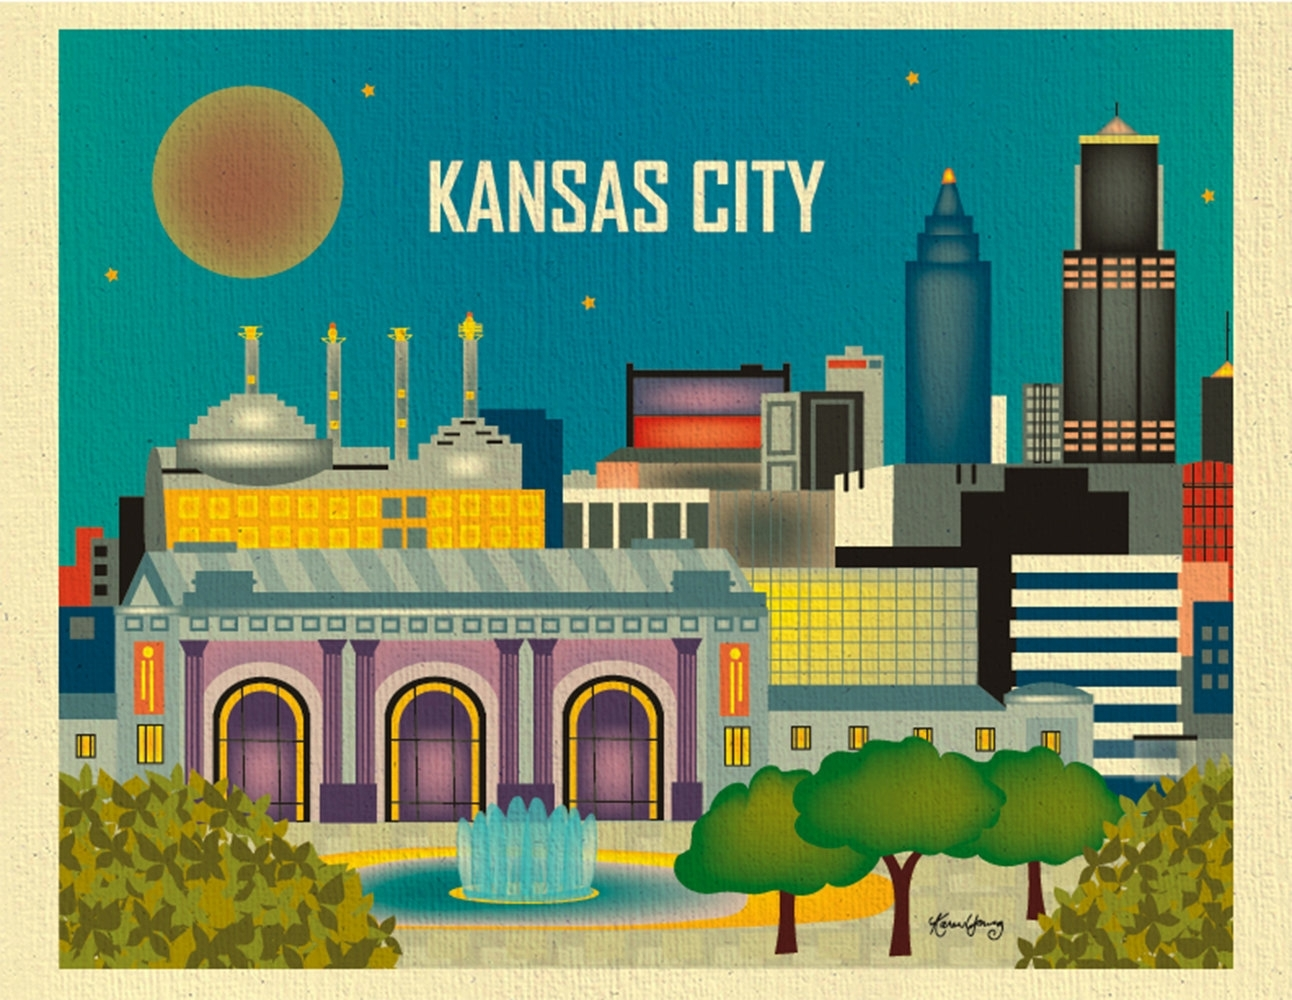 Kansas City Skyline Art Print Kansas City Wall Art Kansas | Etsy pertaining to Kansas City Wall Art (Image 8 of 20)